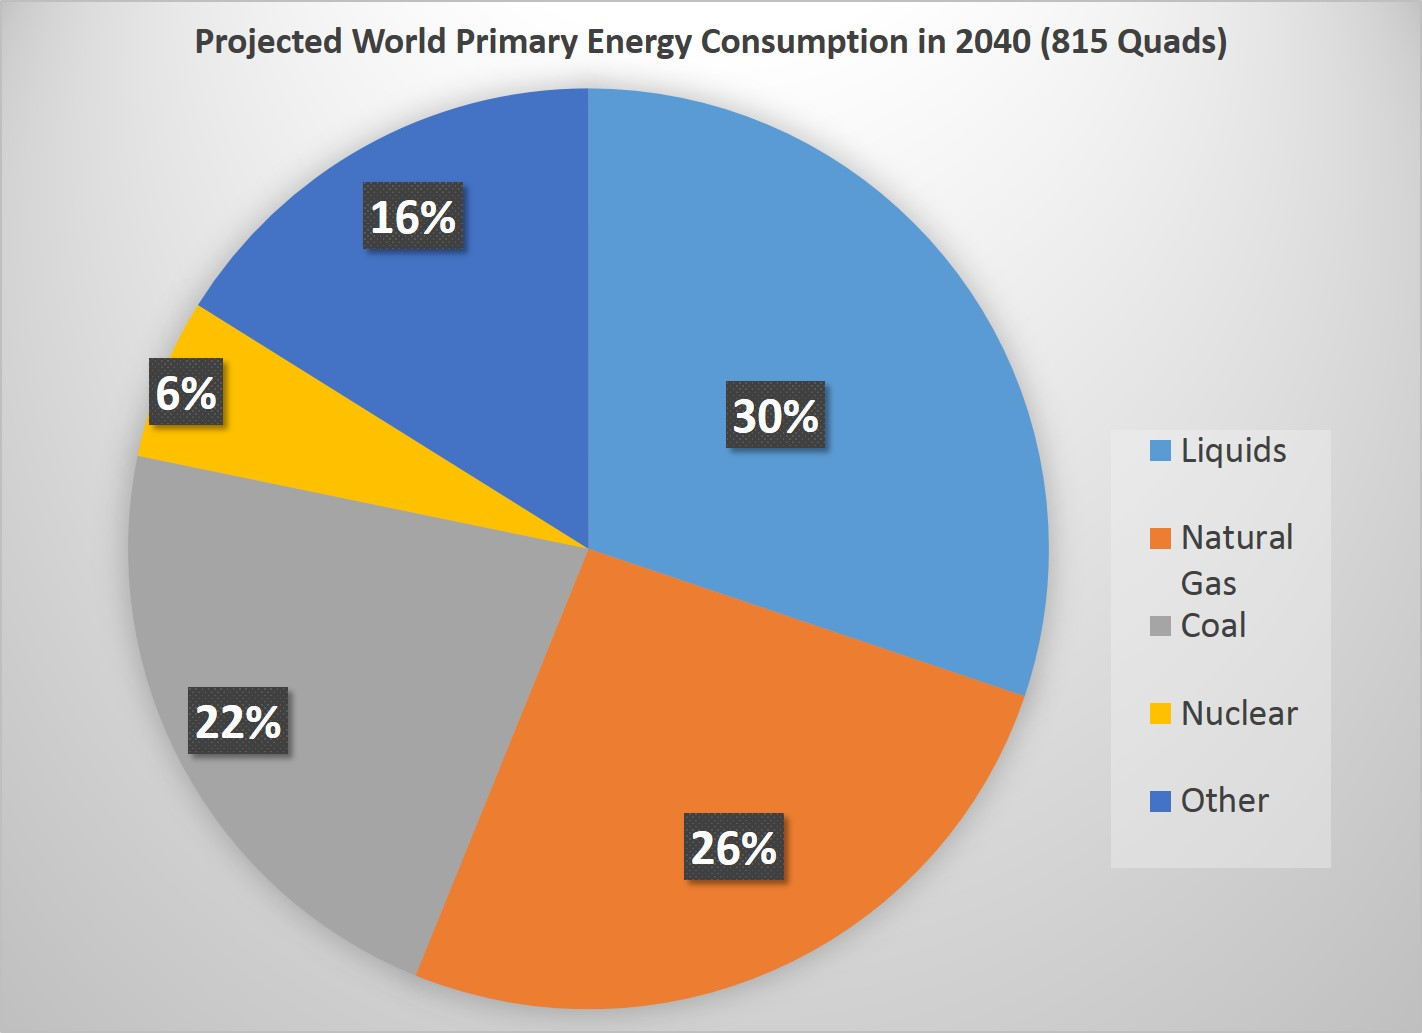 Projected World Energy Consumption by Fuel Source in 2040: Liquids 30%, Natural gas 26%, Coal 22%, Nuclear 6%, Other 16%